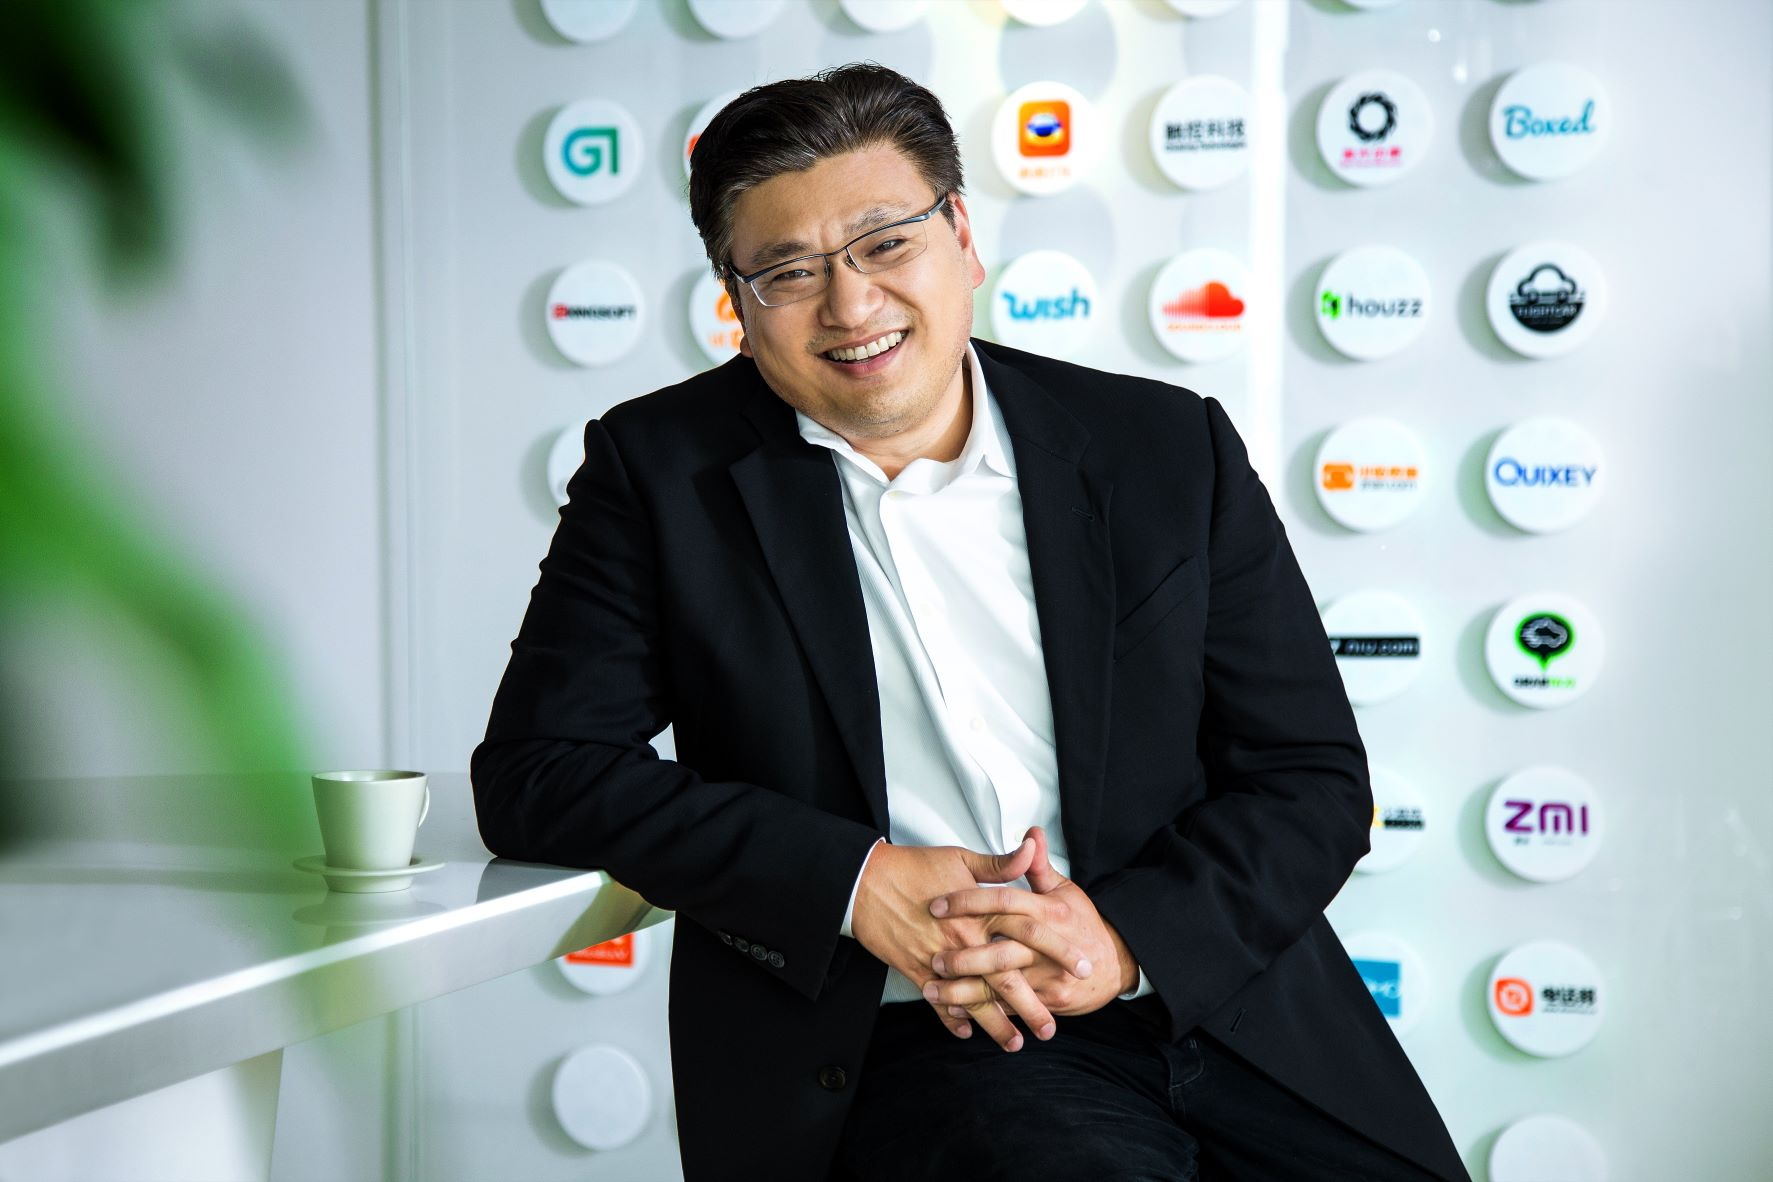 eCommerce trends right now according to GGV Capital Managing Partner Hans Tung